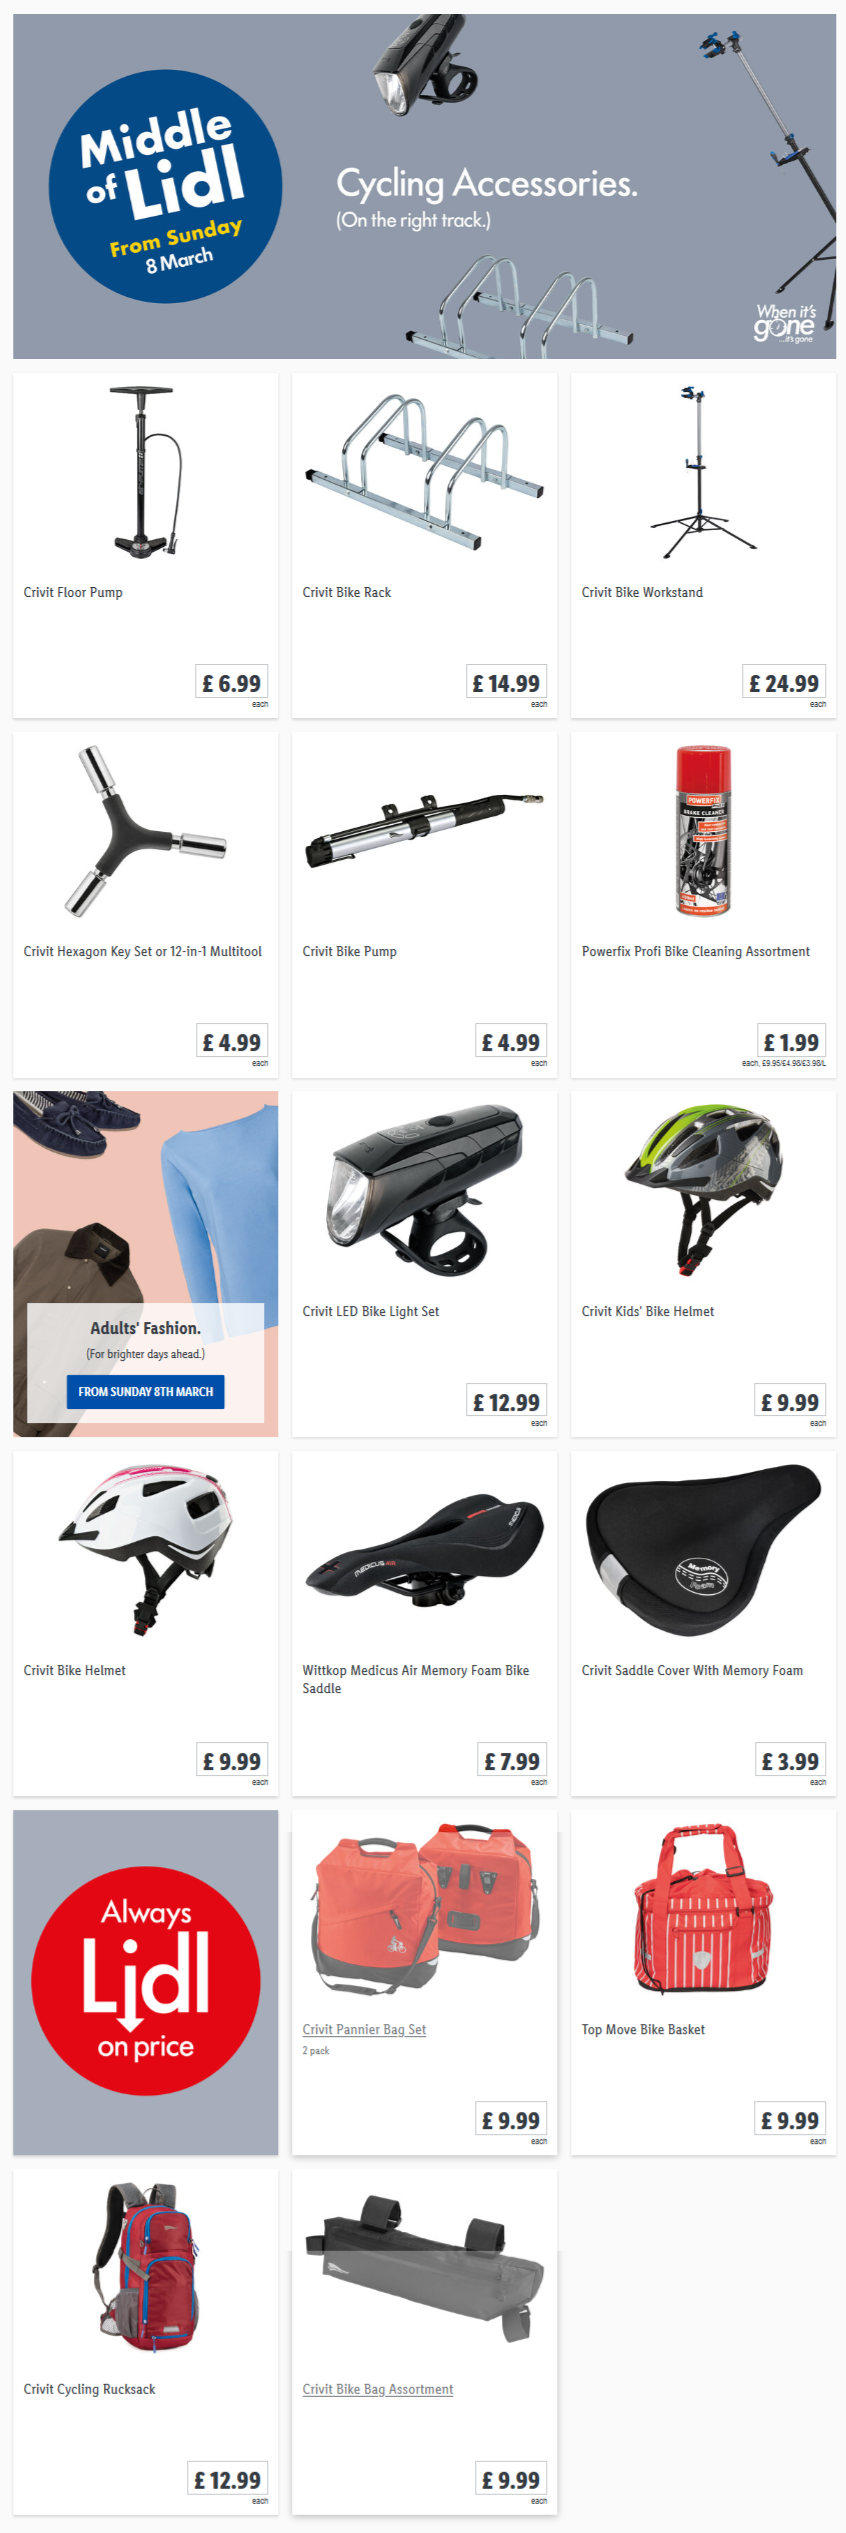 lidl cycling accessories from sunday. Black Bedroom Furniture Sets. Home Design Ideas